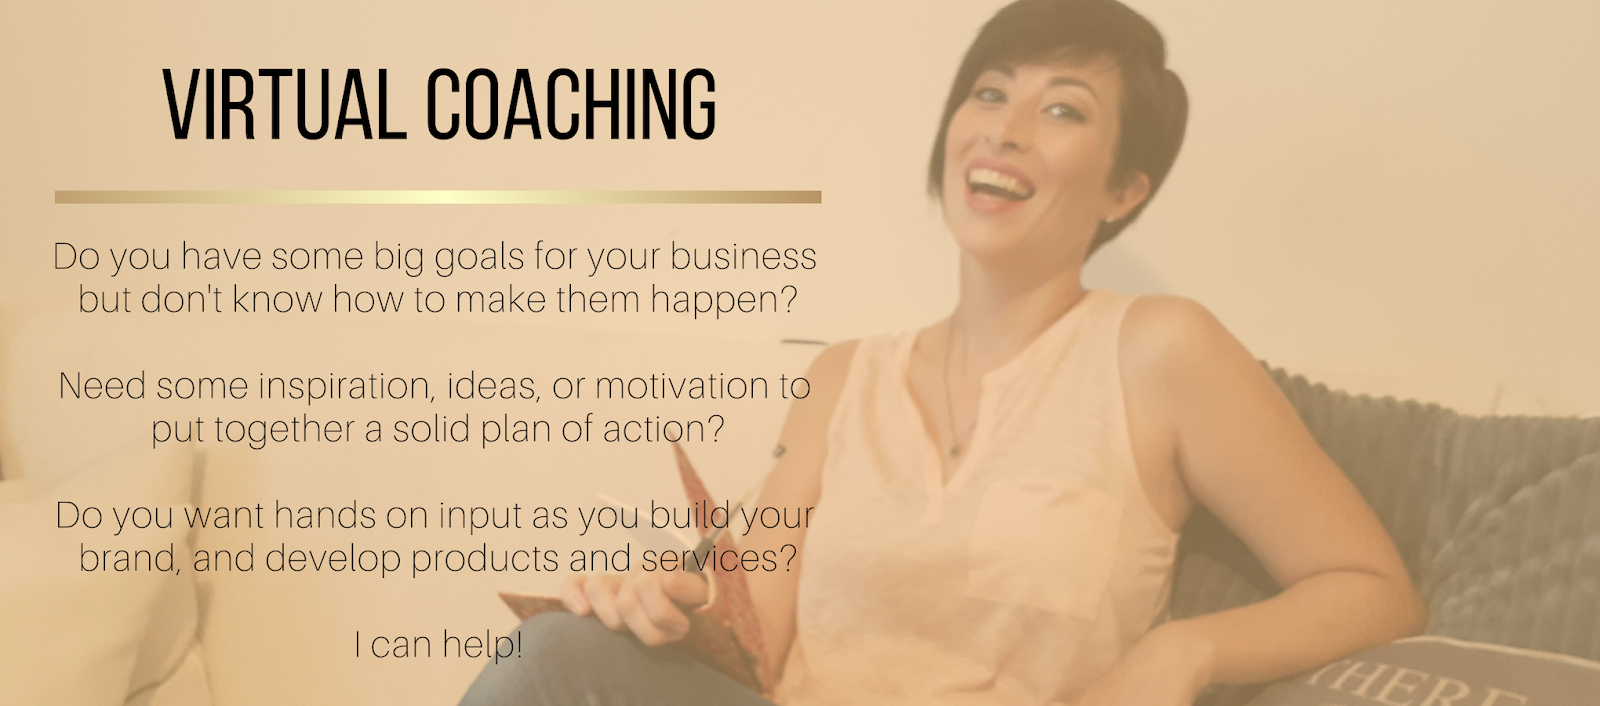 Virtual Coaching Sessions with Jo Linsdell. Ideas, inspiration, solid plans of action to get you results